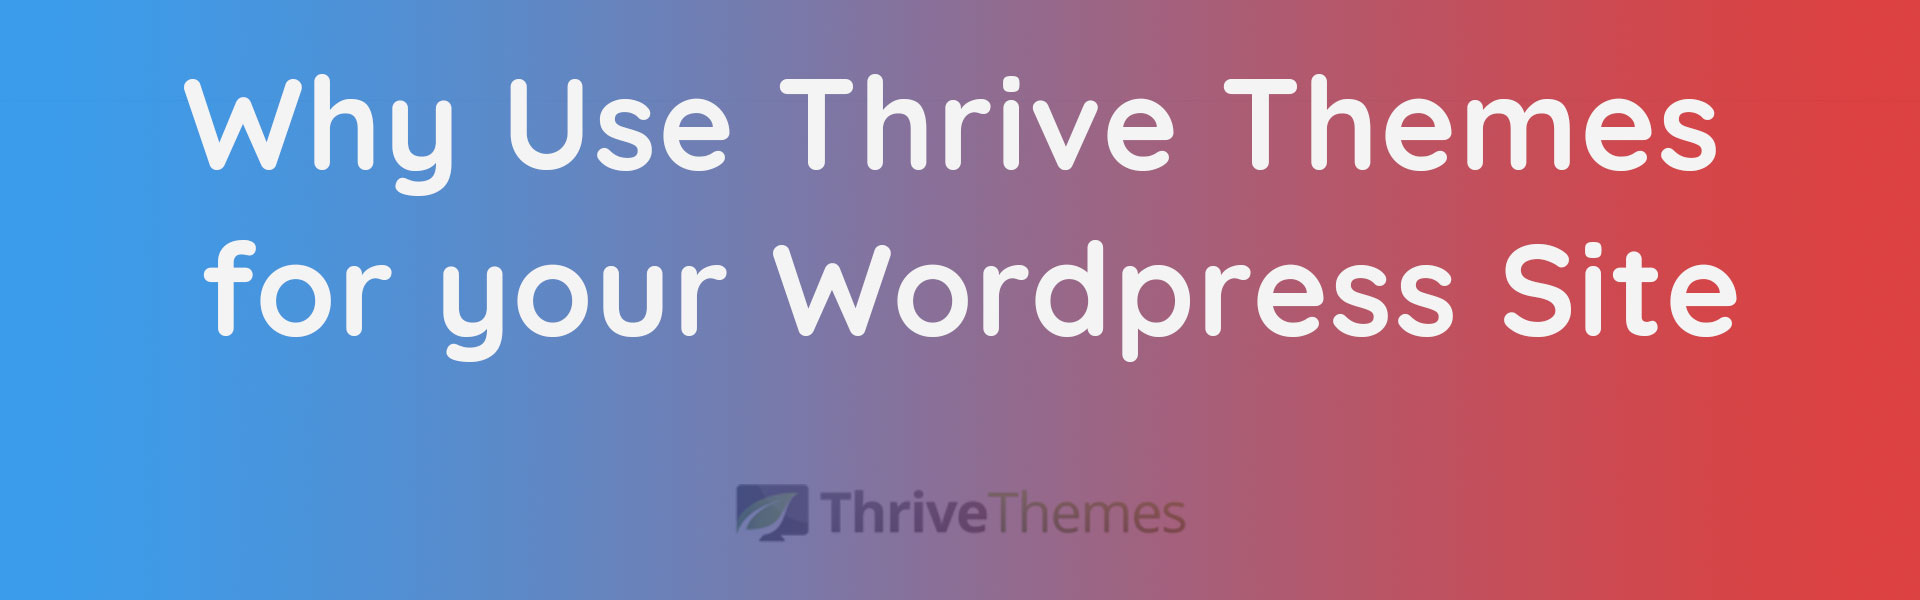 Thrive Themes  WordPress Themes Coupon Code 50 Off 2020